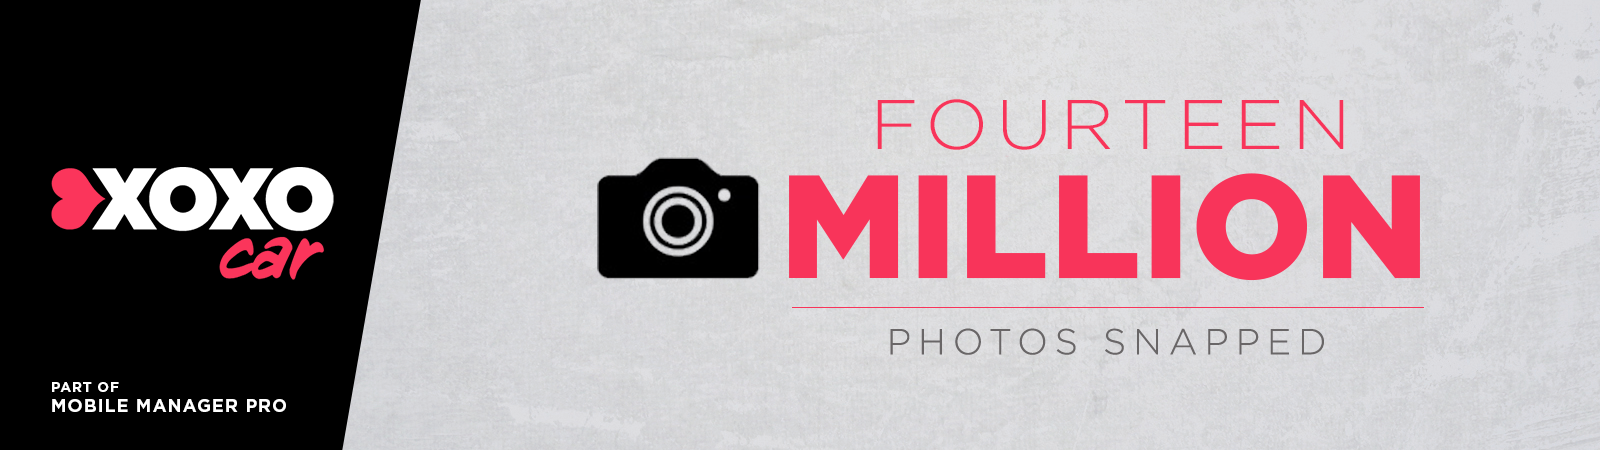 14 Million Photos Used to Sell More Services!